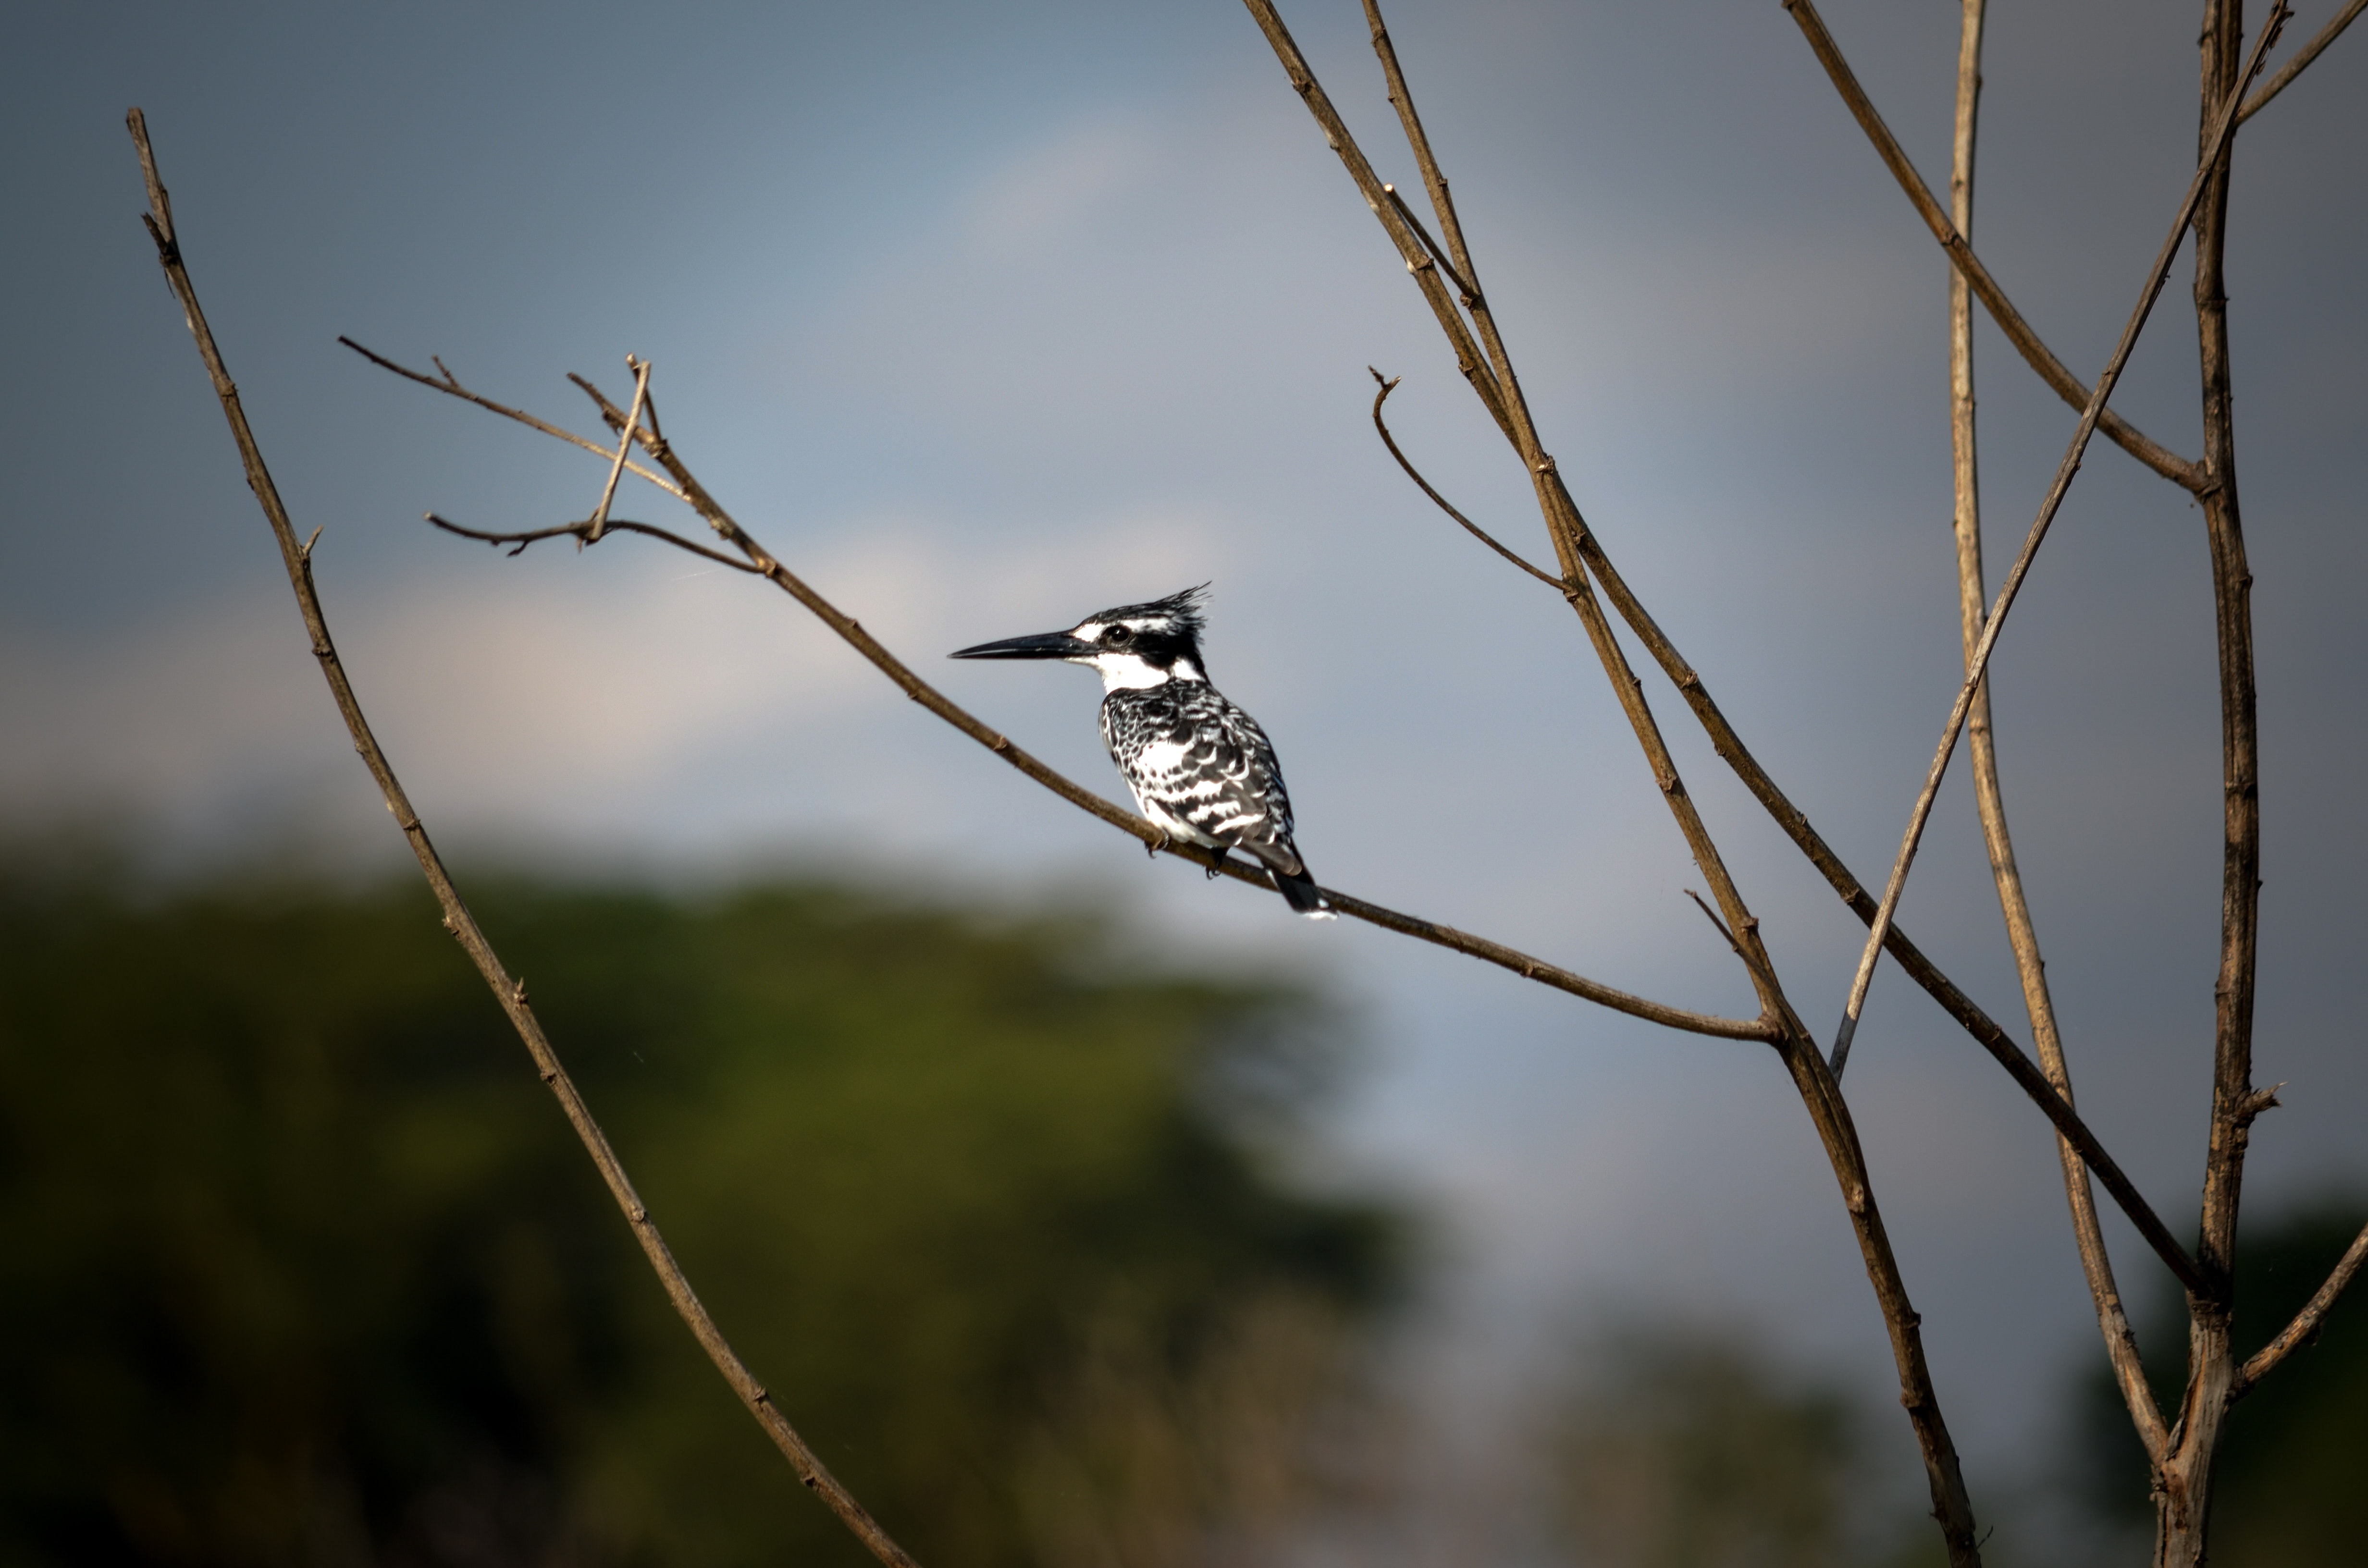 White and black bird on brown tree stem photo